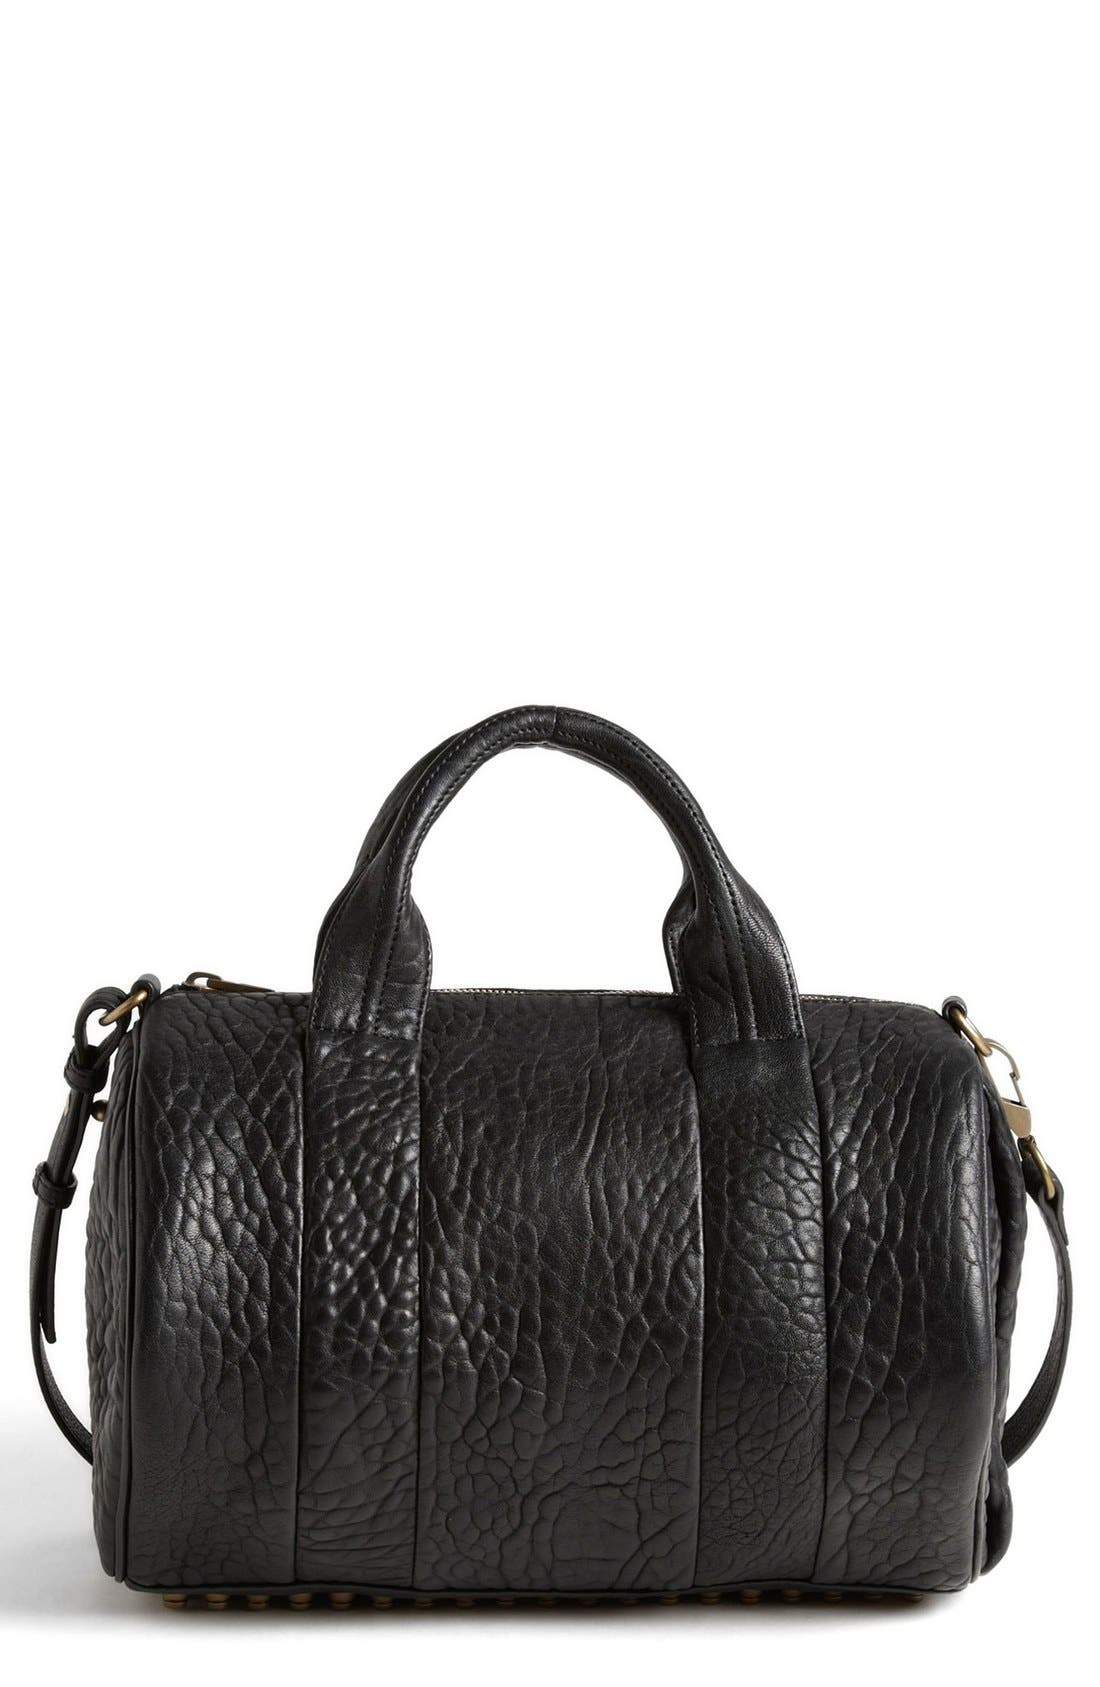 Main Image - Alexander Wang 'Rocco - Antique Brass' Leather Satchel